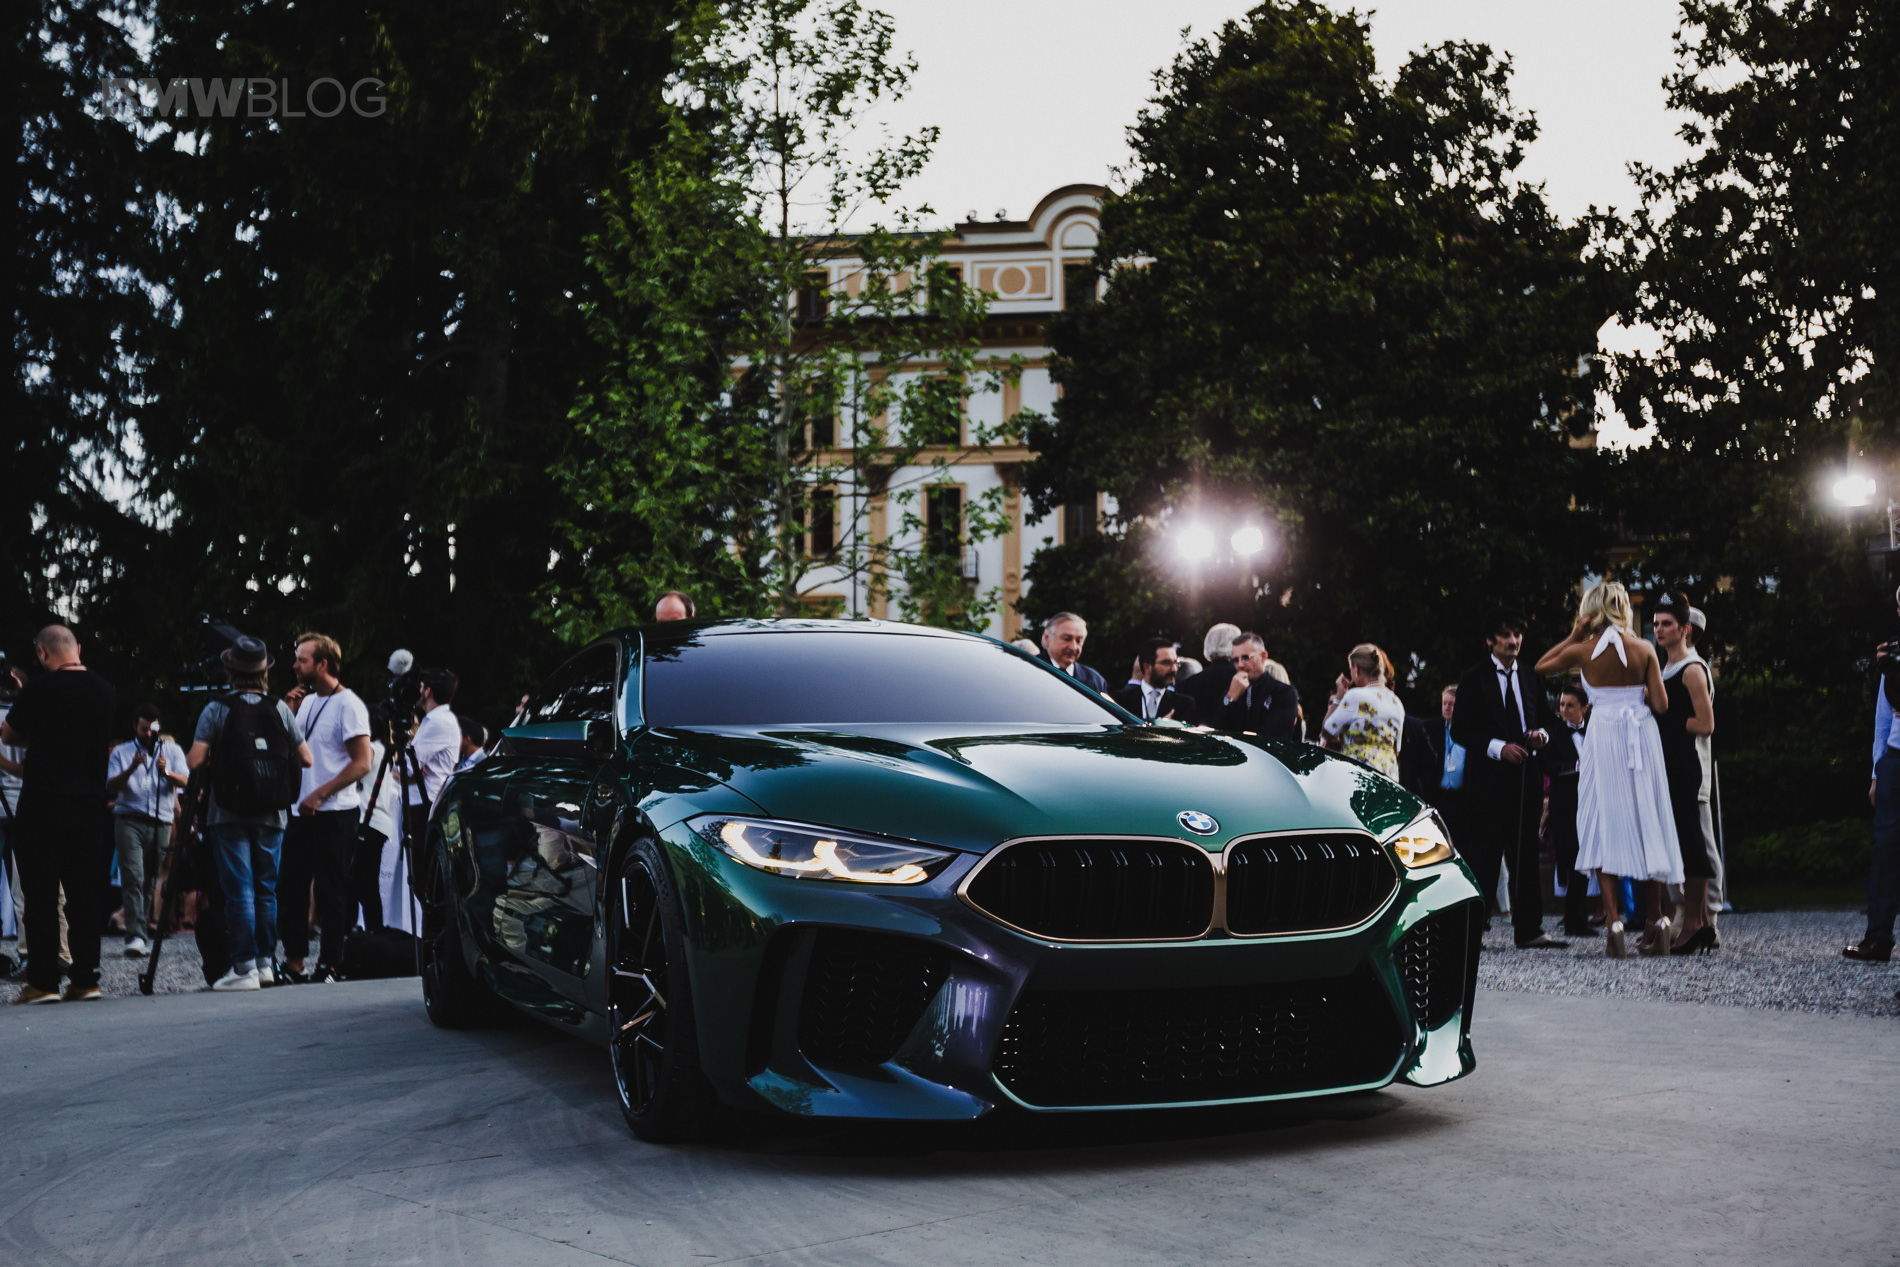 BMW M8 Gran Coupe Concept images 03